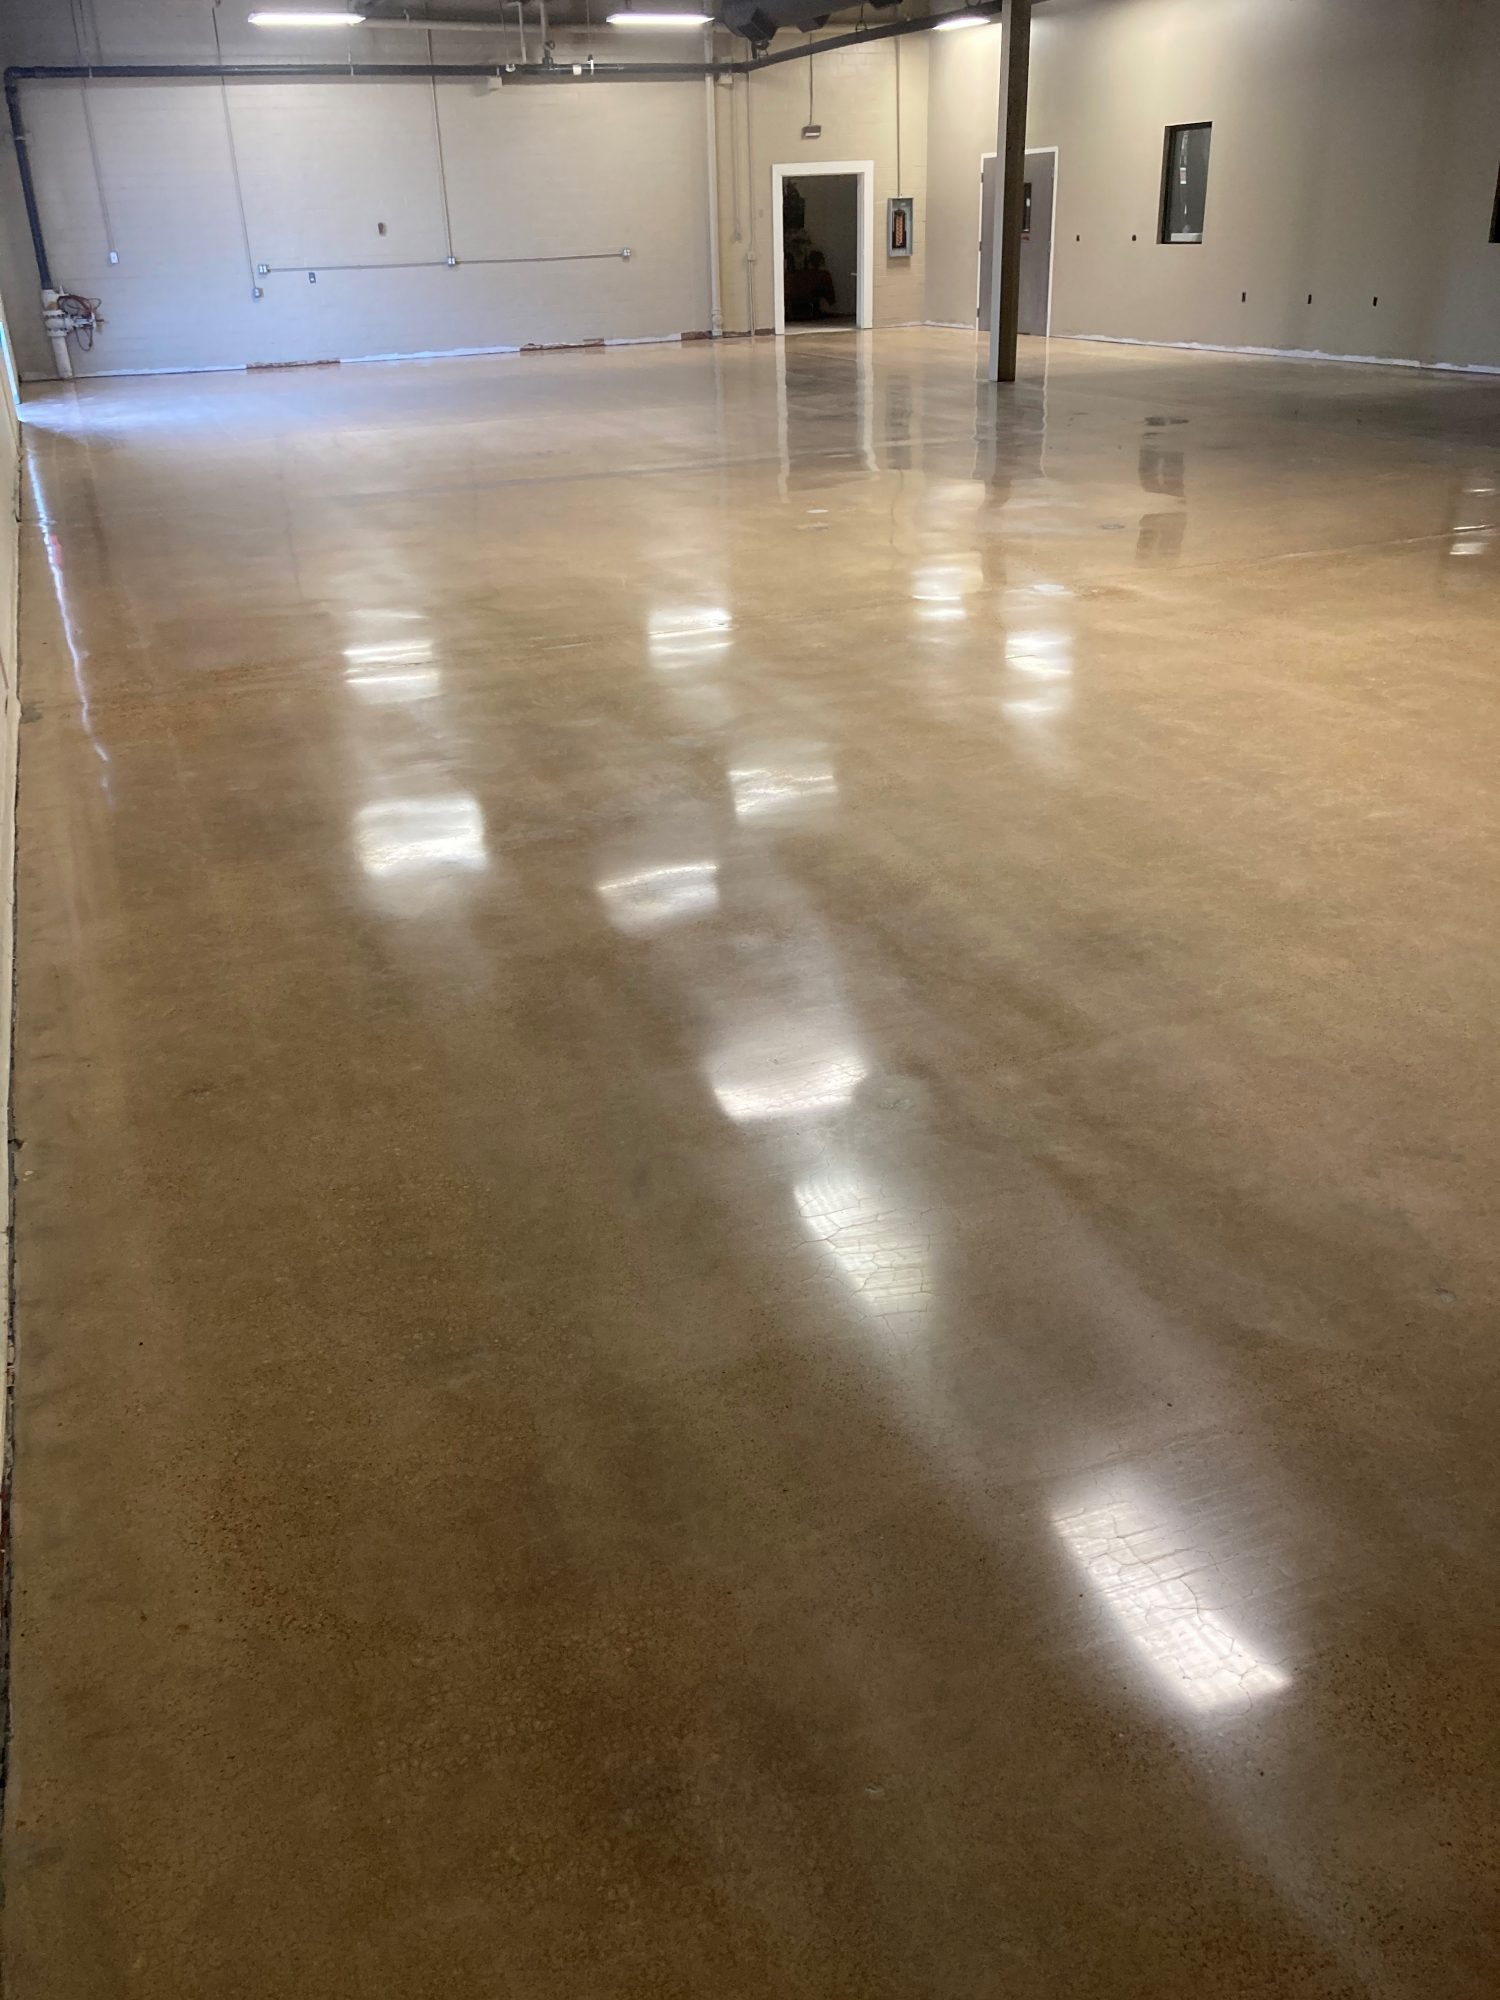 Polish concrete, polished concrete, demo concrete, coating removal, Industrial Applications, Inc., TeamIA, IA30yrs